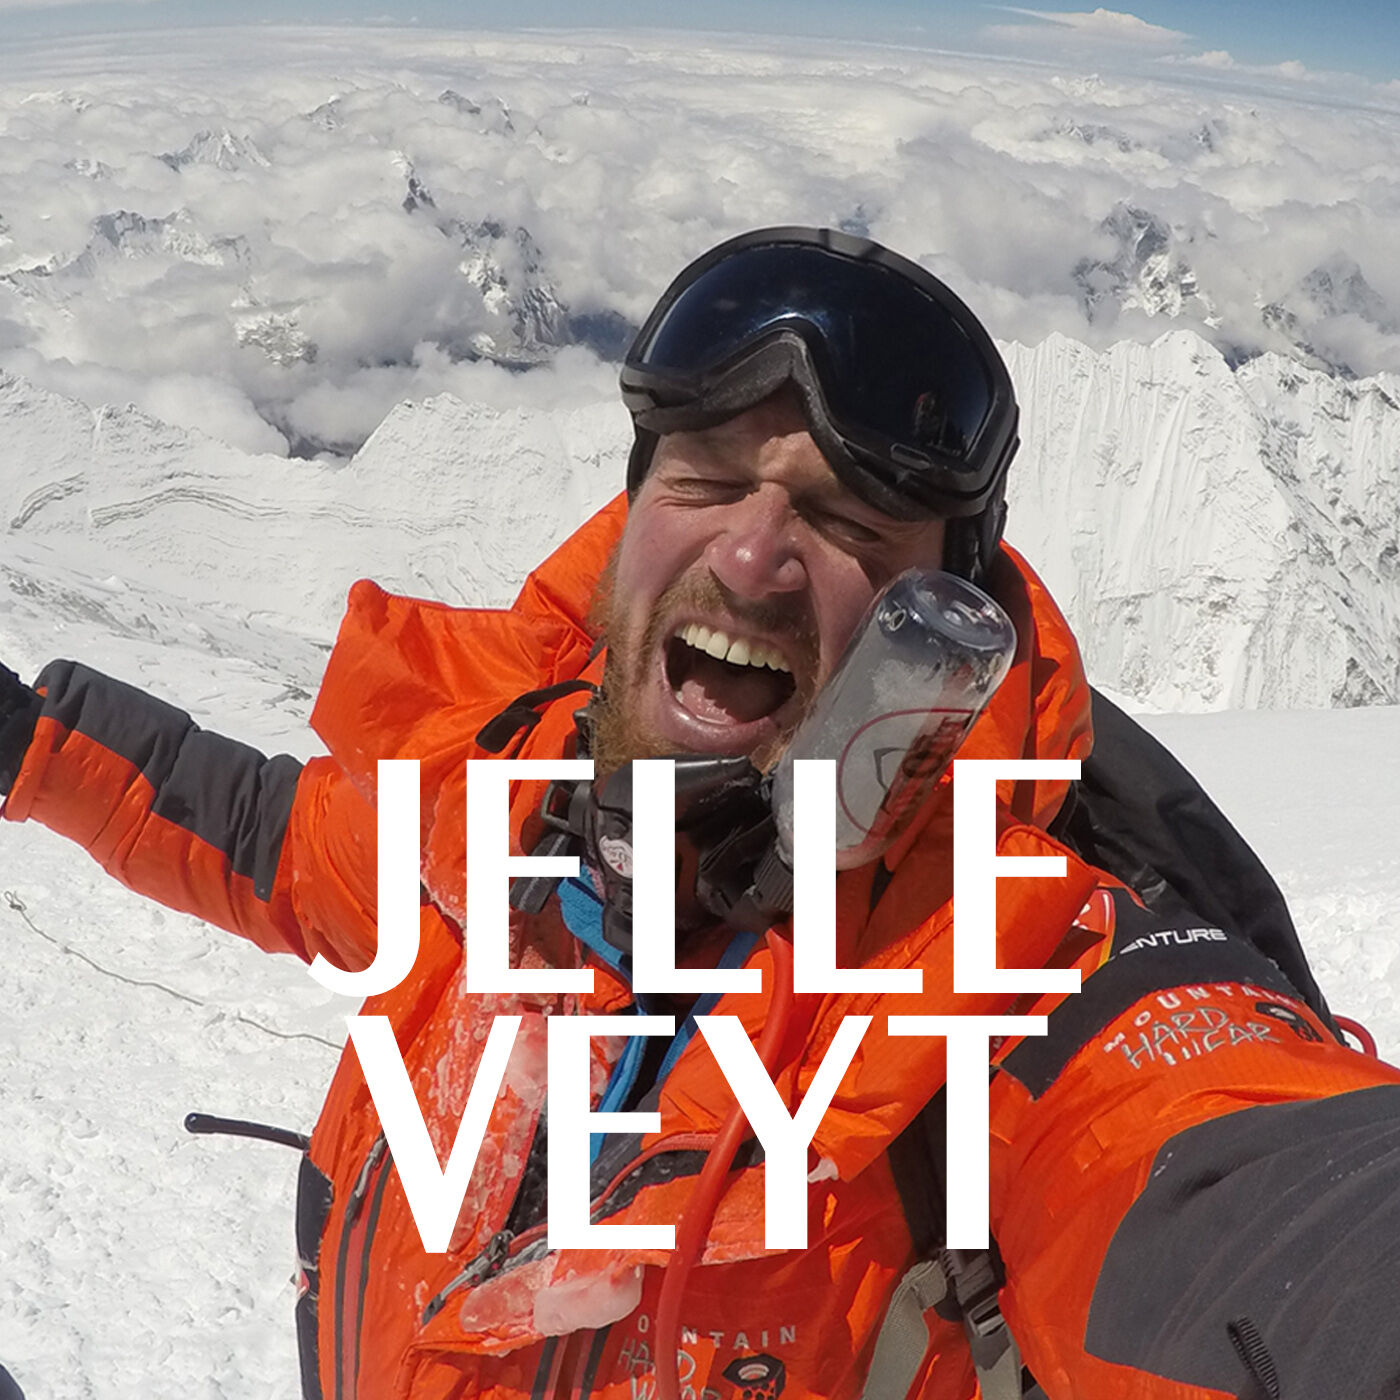 The Human Powered Rule with Jelle Veyt